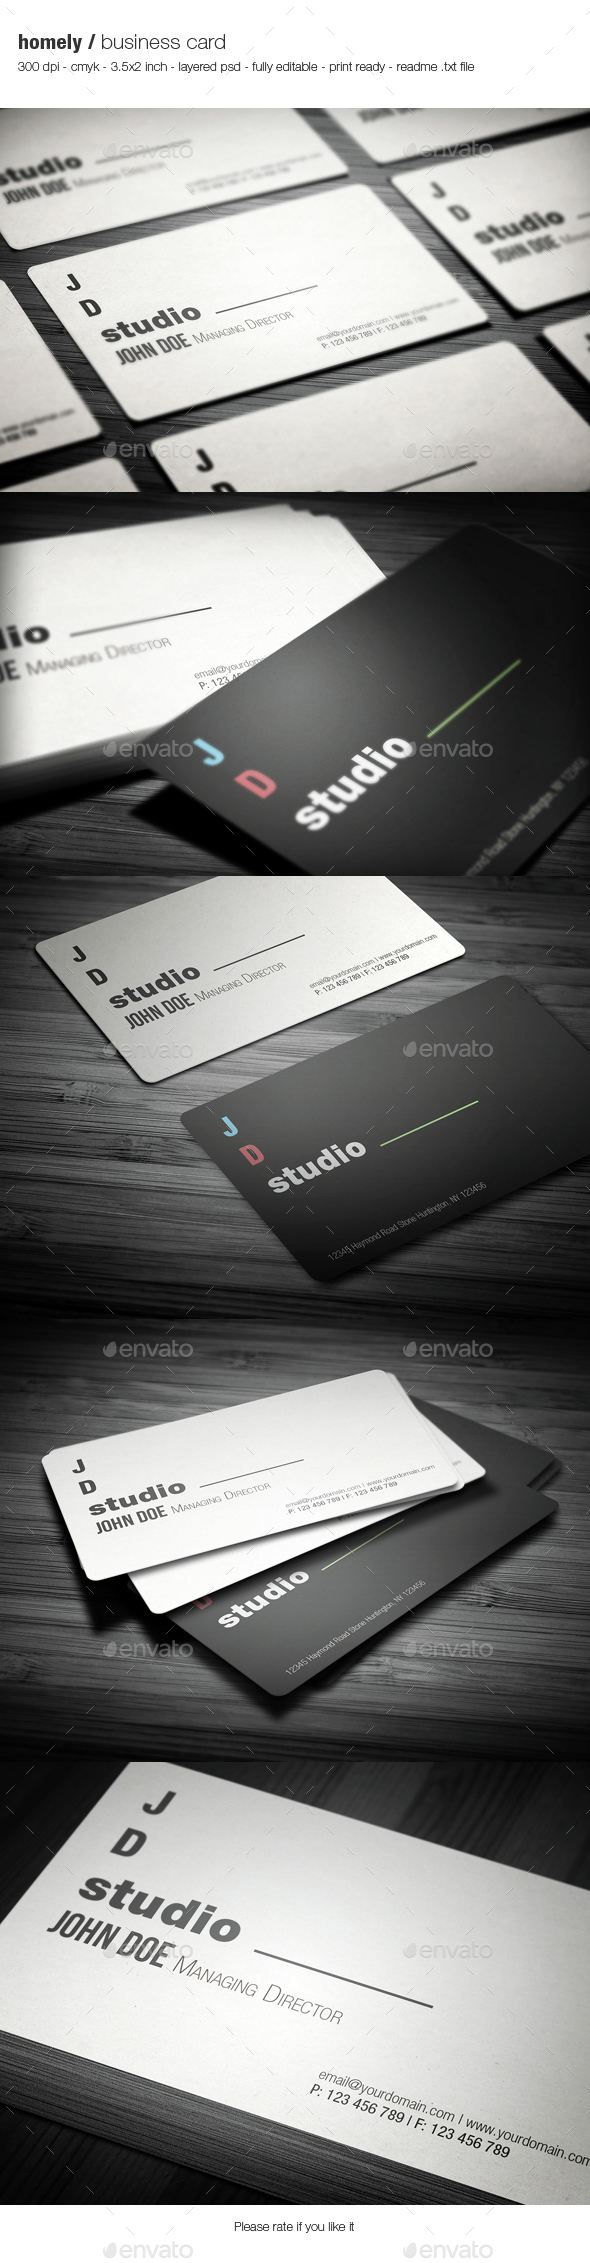 Homely Business Card - Creative Business Cards